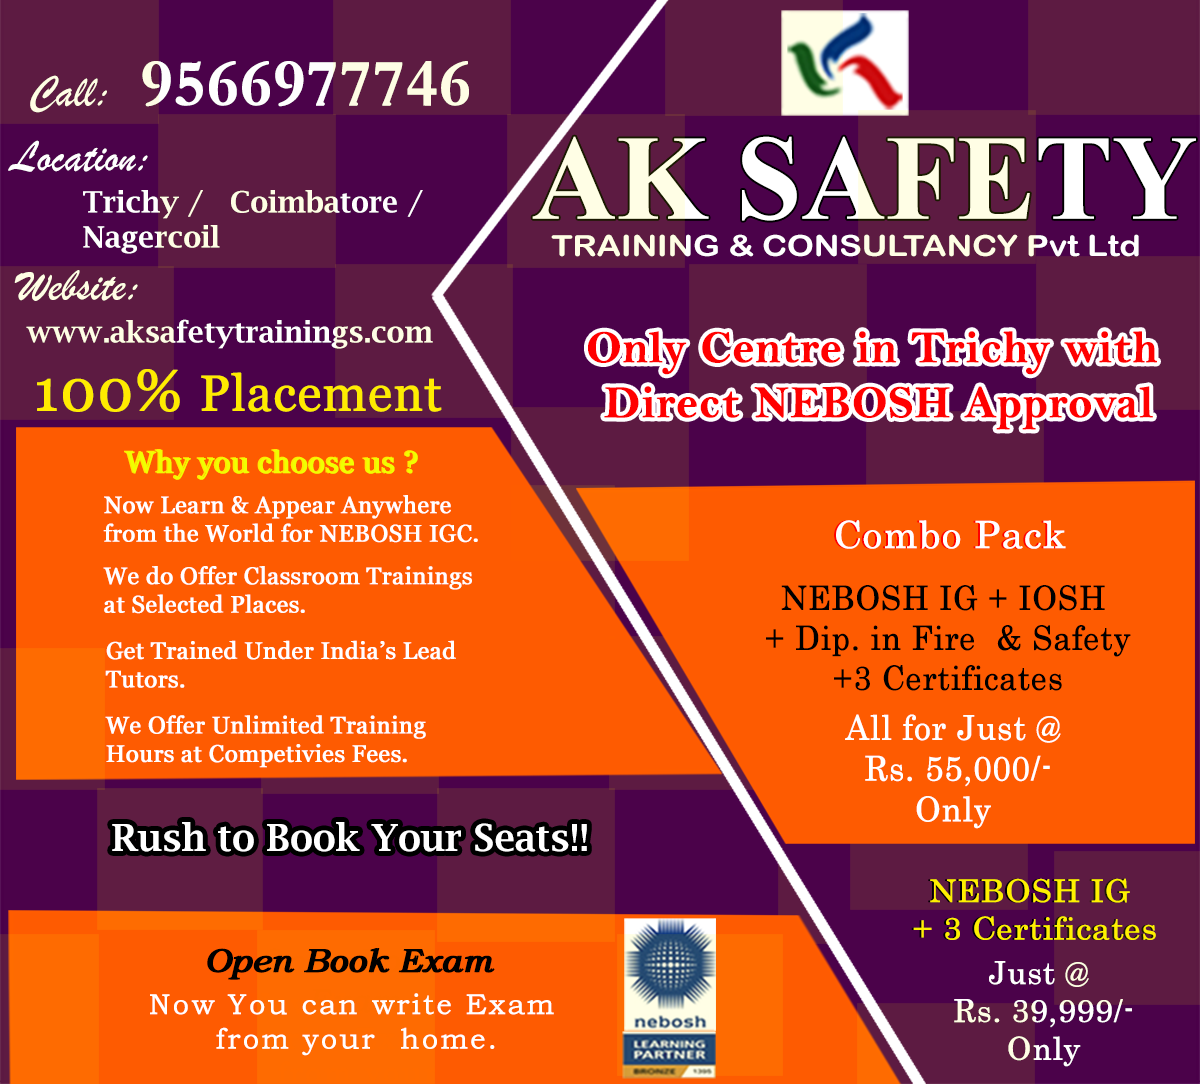 AK SAFETY TRAINING AND CONSULTANCY-Services-Other Services-Trichy